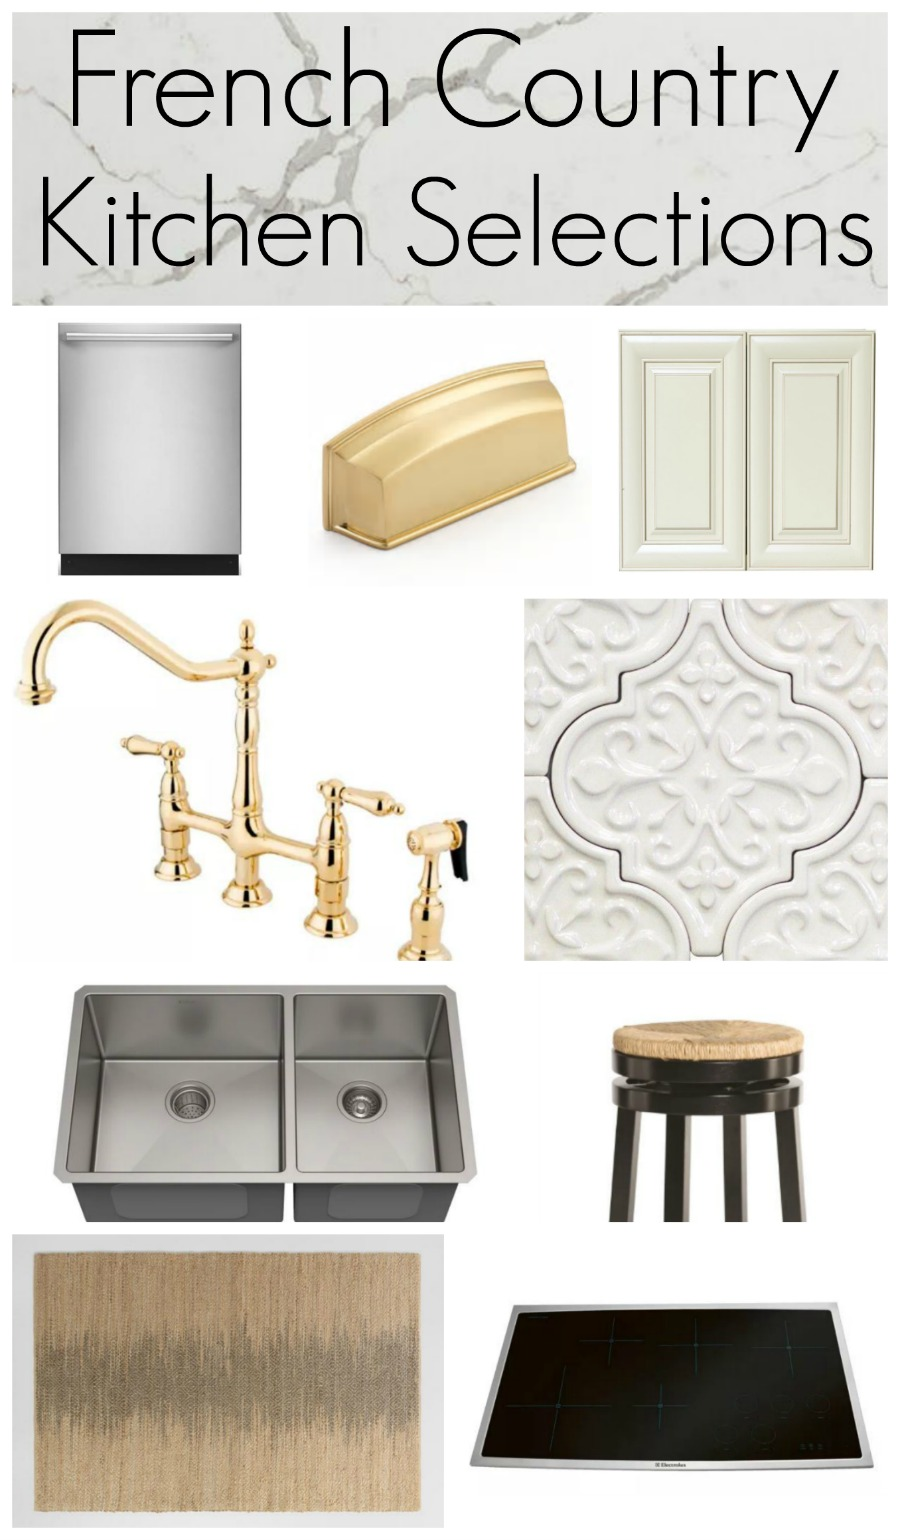 A builder grade home gets a modern French country kitchen remodel. A complete list of selections for your French Country kitchen including tile, countertops, appliances, hardware and accents plus a resource guide for sourcing great products. #frenchcountry #frenchcountrykitchen #resourceguide #kithentile #quartzcountertops #goldfaucet #cottagekitchen #buildergrademakeover #spechouseremodel